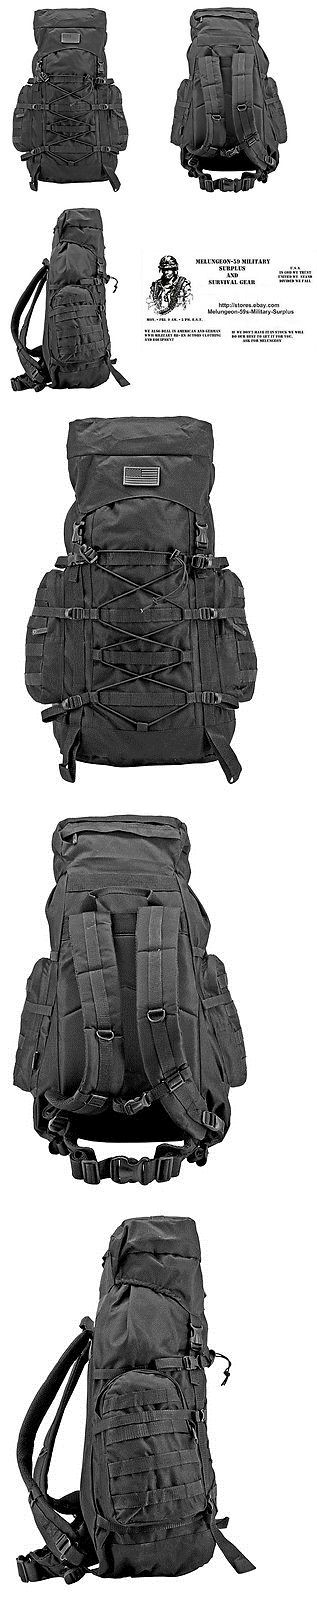 Other Emergency Gear 181415: The Washington Molle Backpack Bug Out Bag Tactical Military Survival Gear-Black -> BUY IT NOW ONLY: $56.65 on eBay!